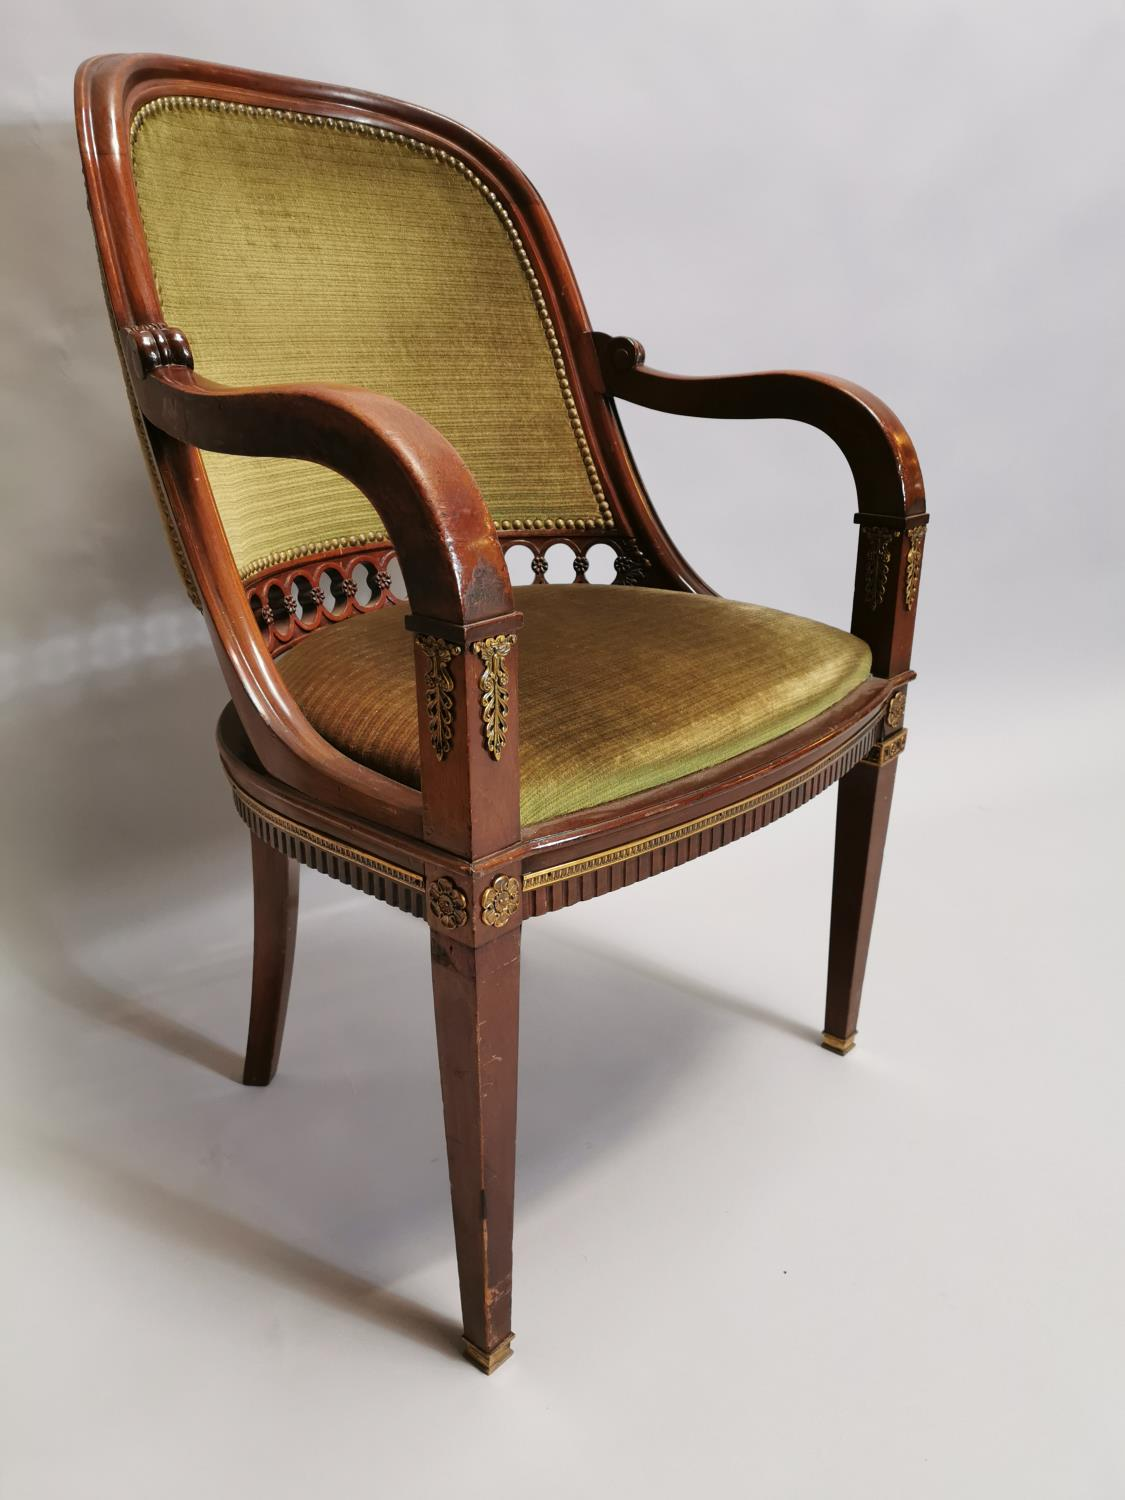 Upholstered mahogany desk chair - Image 7 of 8